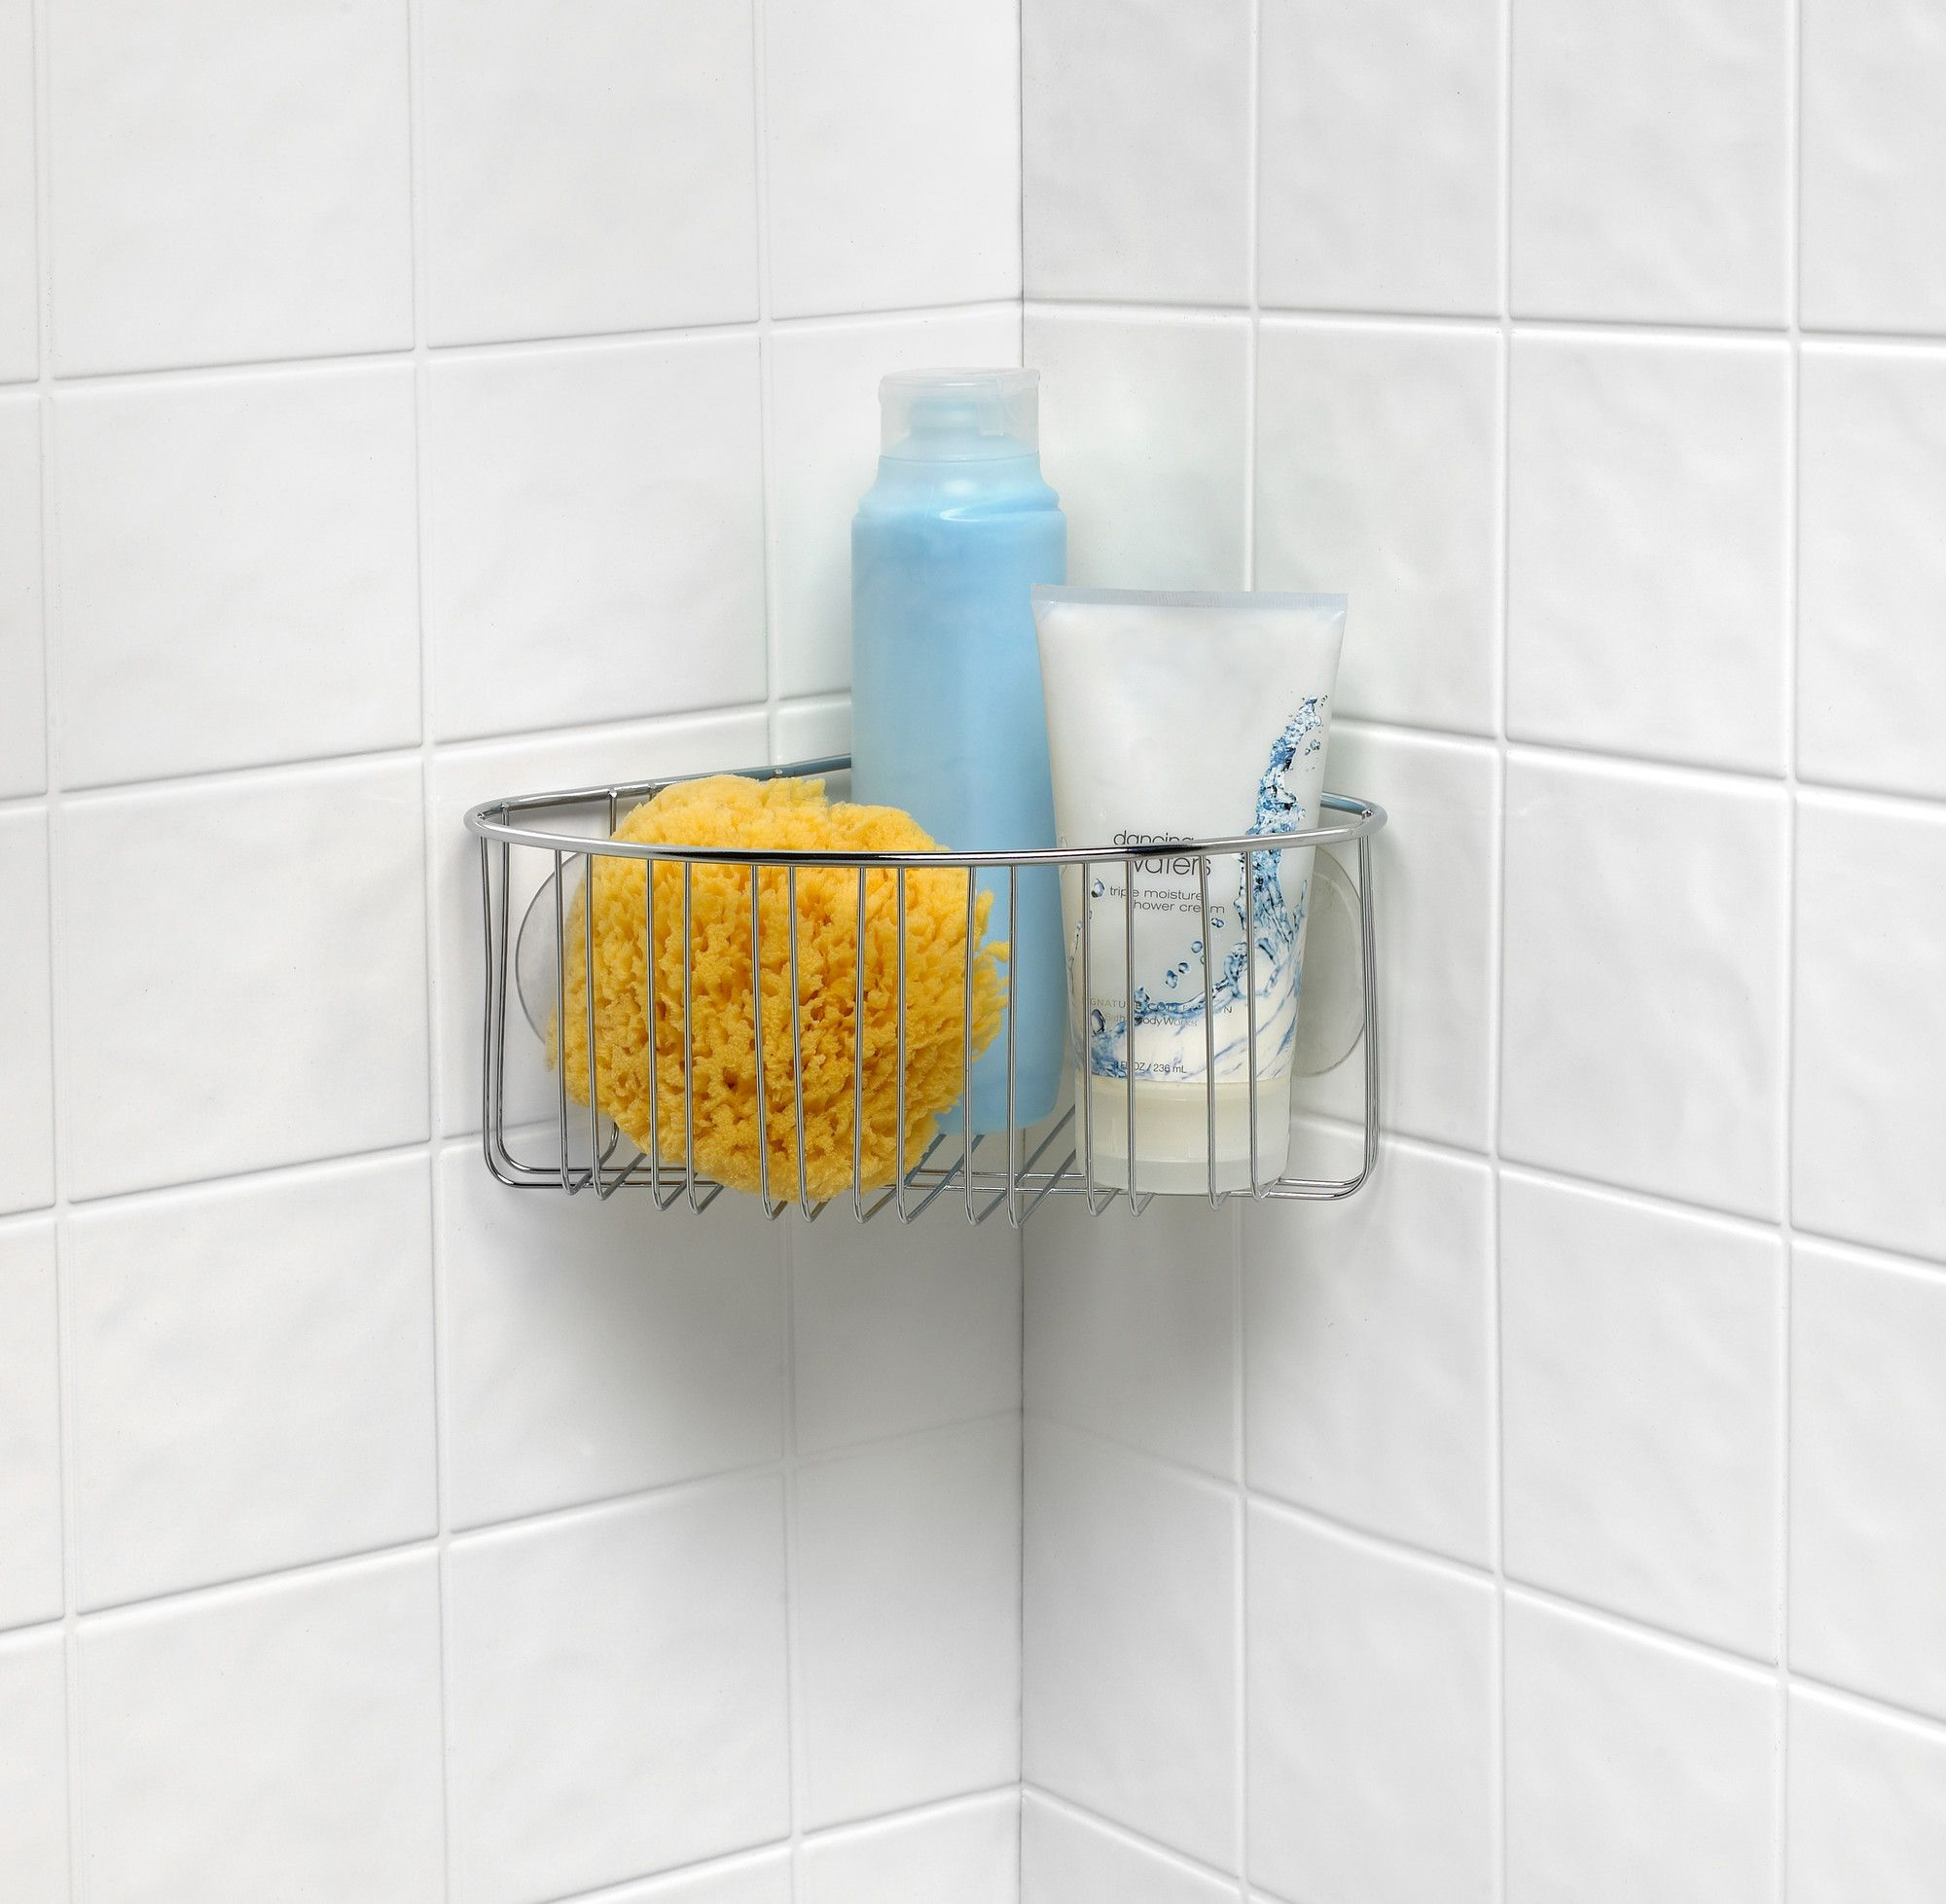 Contempo Stainless Steel Wall Mounted Corner Shower Basket   Corner ...